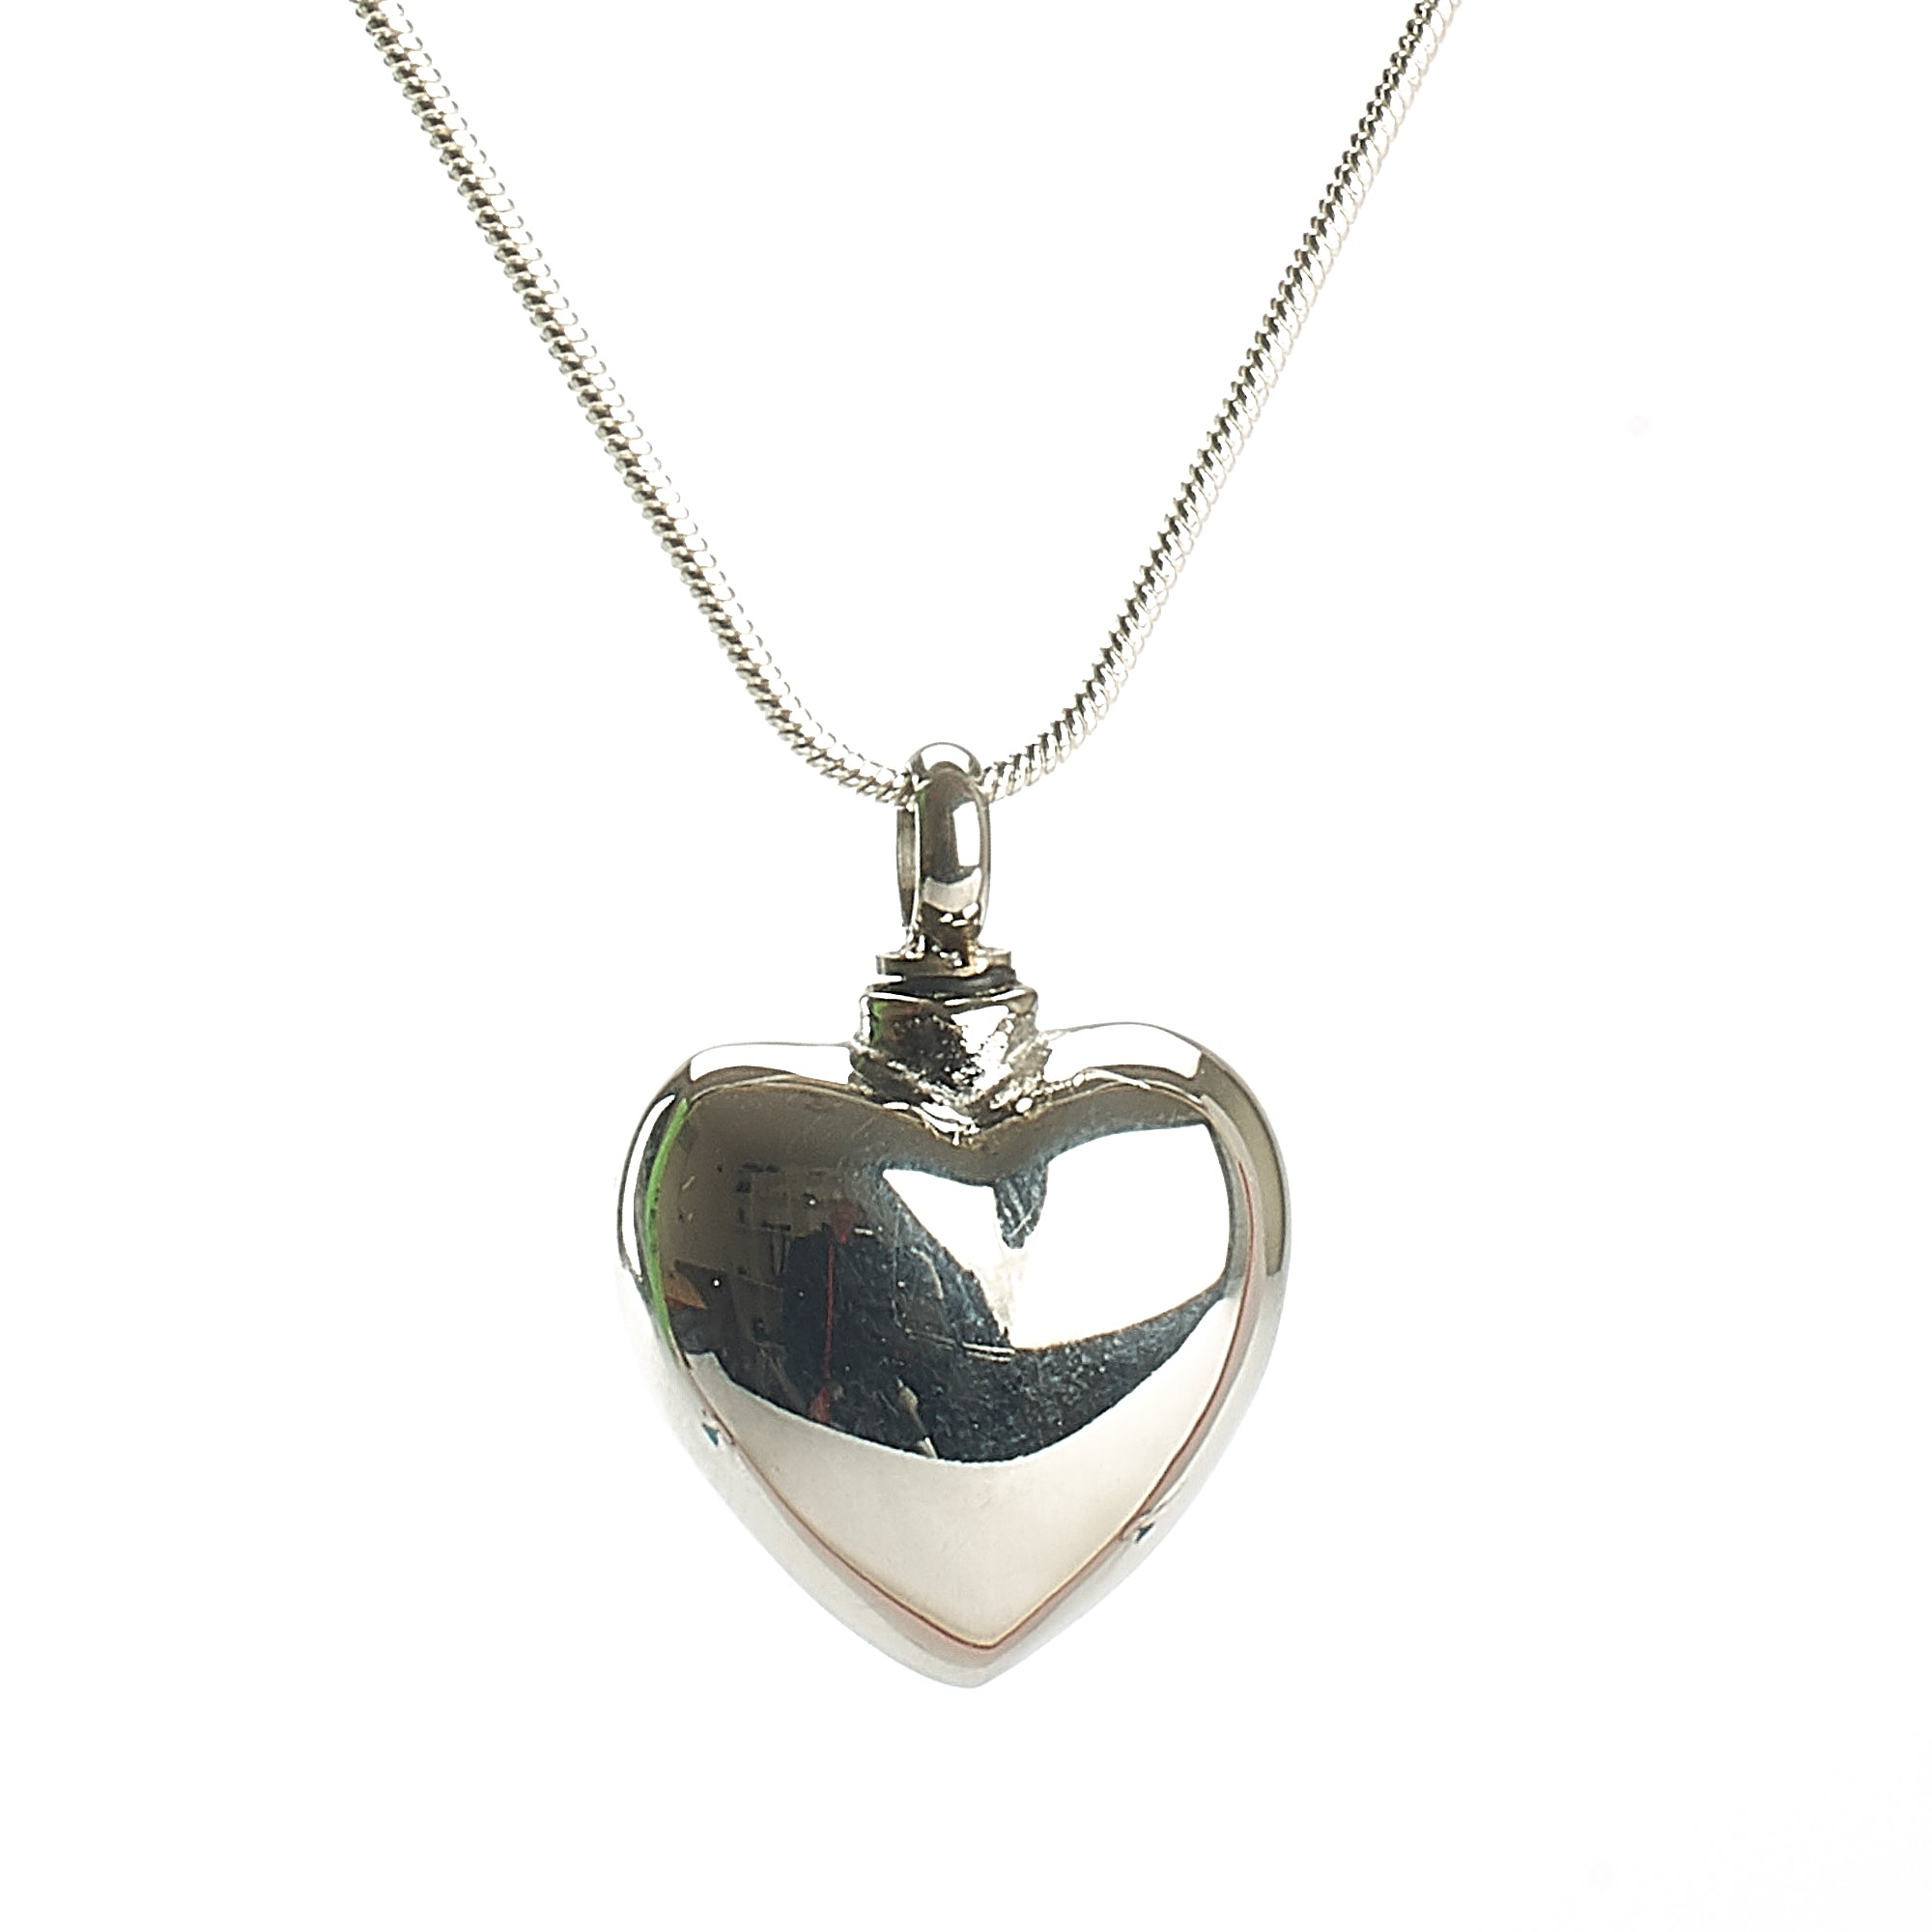 Cremation Pendant - Rounded High Shine Heart